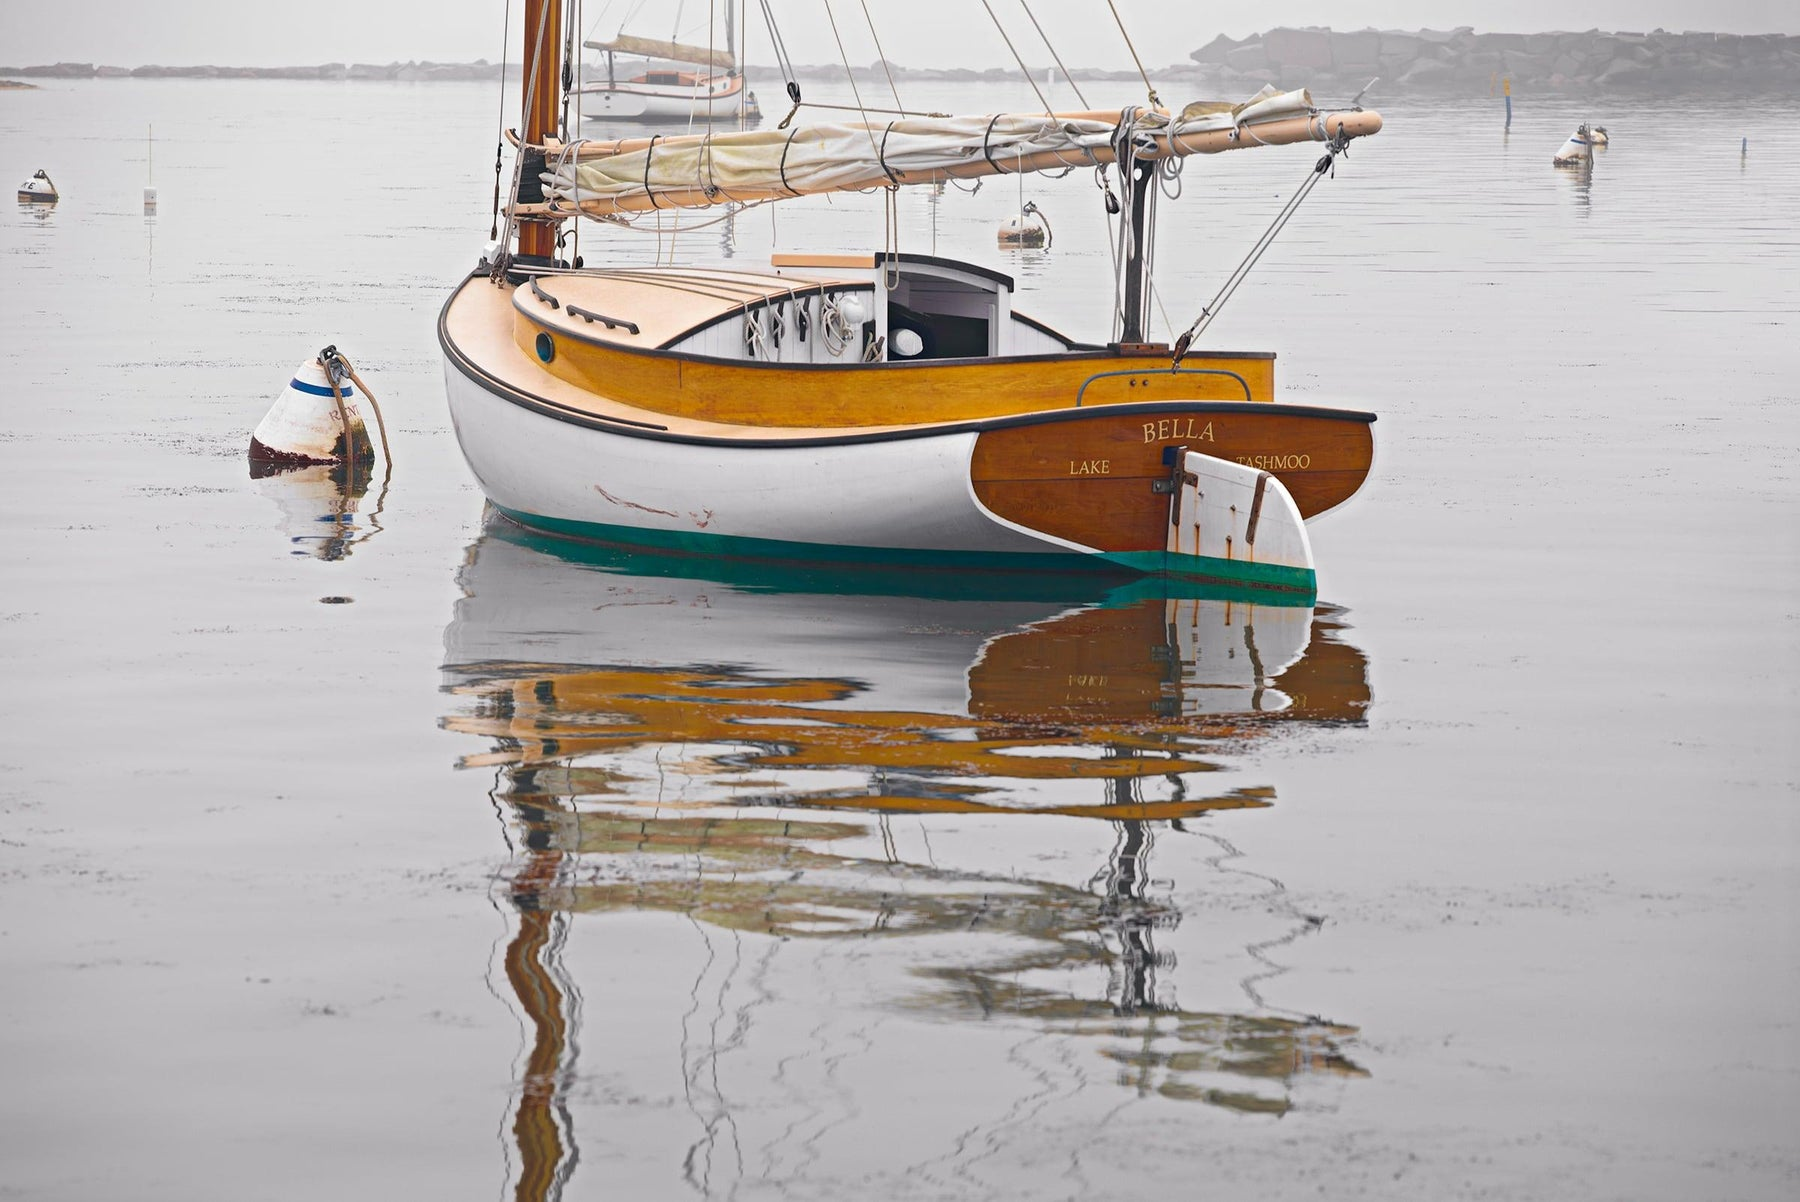 Sail boat and buoy reflecting off the water in a fog filled harbor in Martha's Vineyard Massachusetts